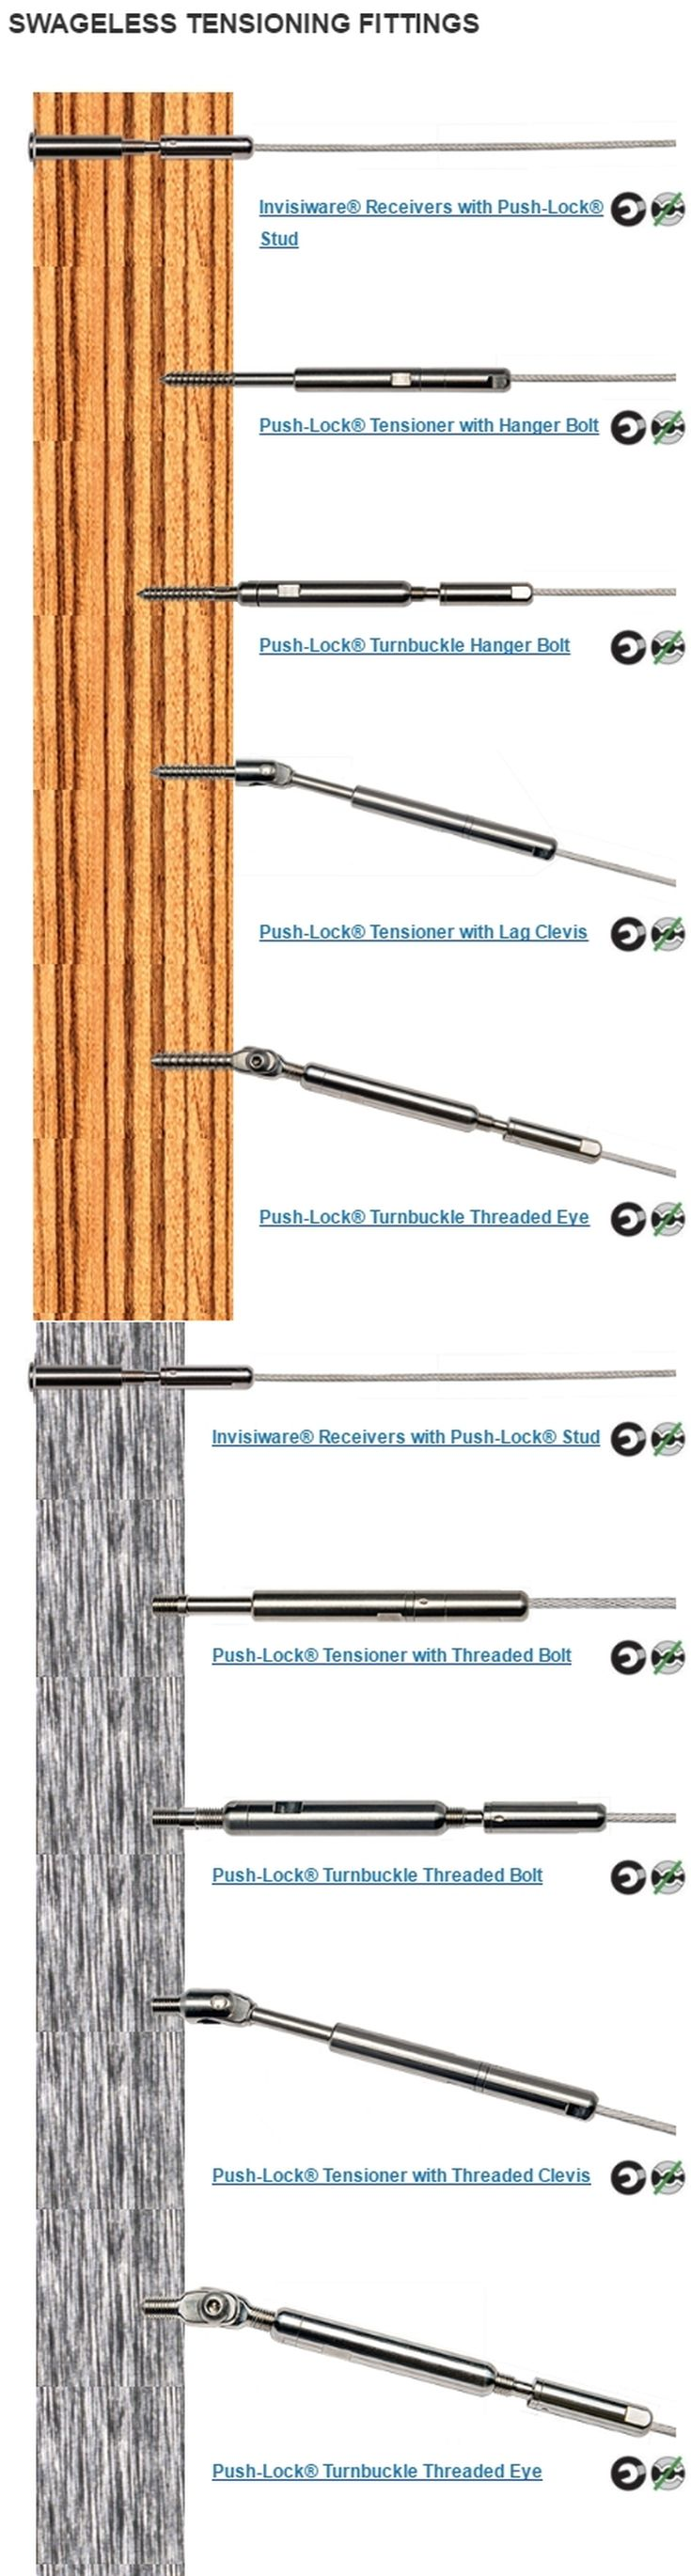 Swageless Ultra-tec® Cable Railing tensioning fittings for wood and metal posts.